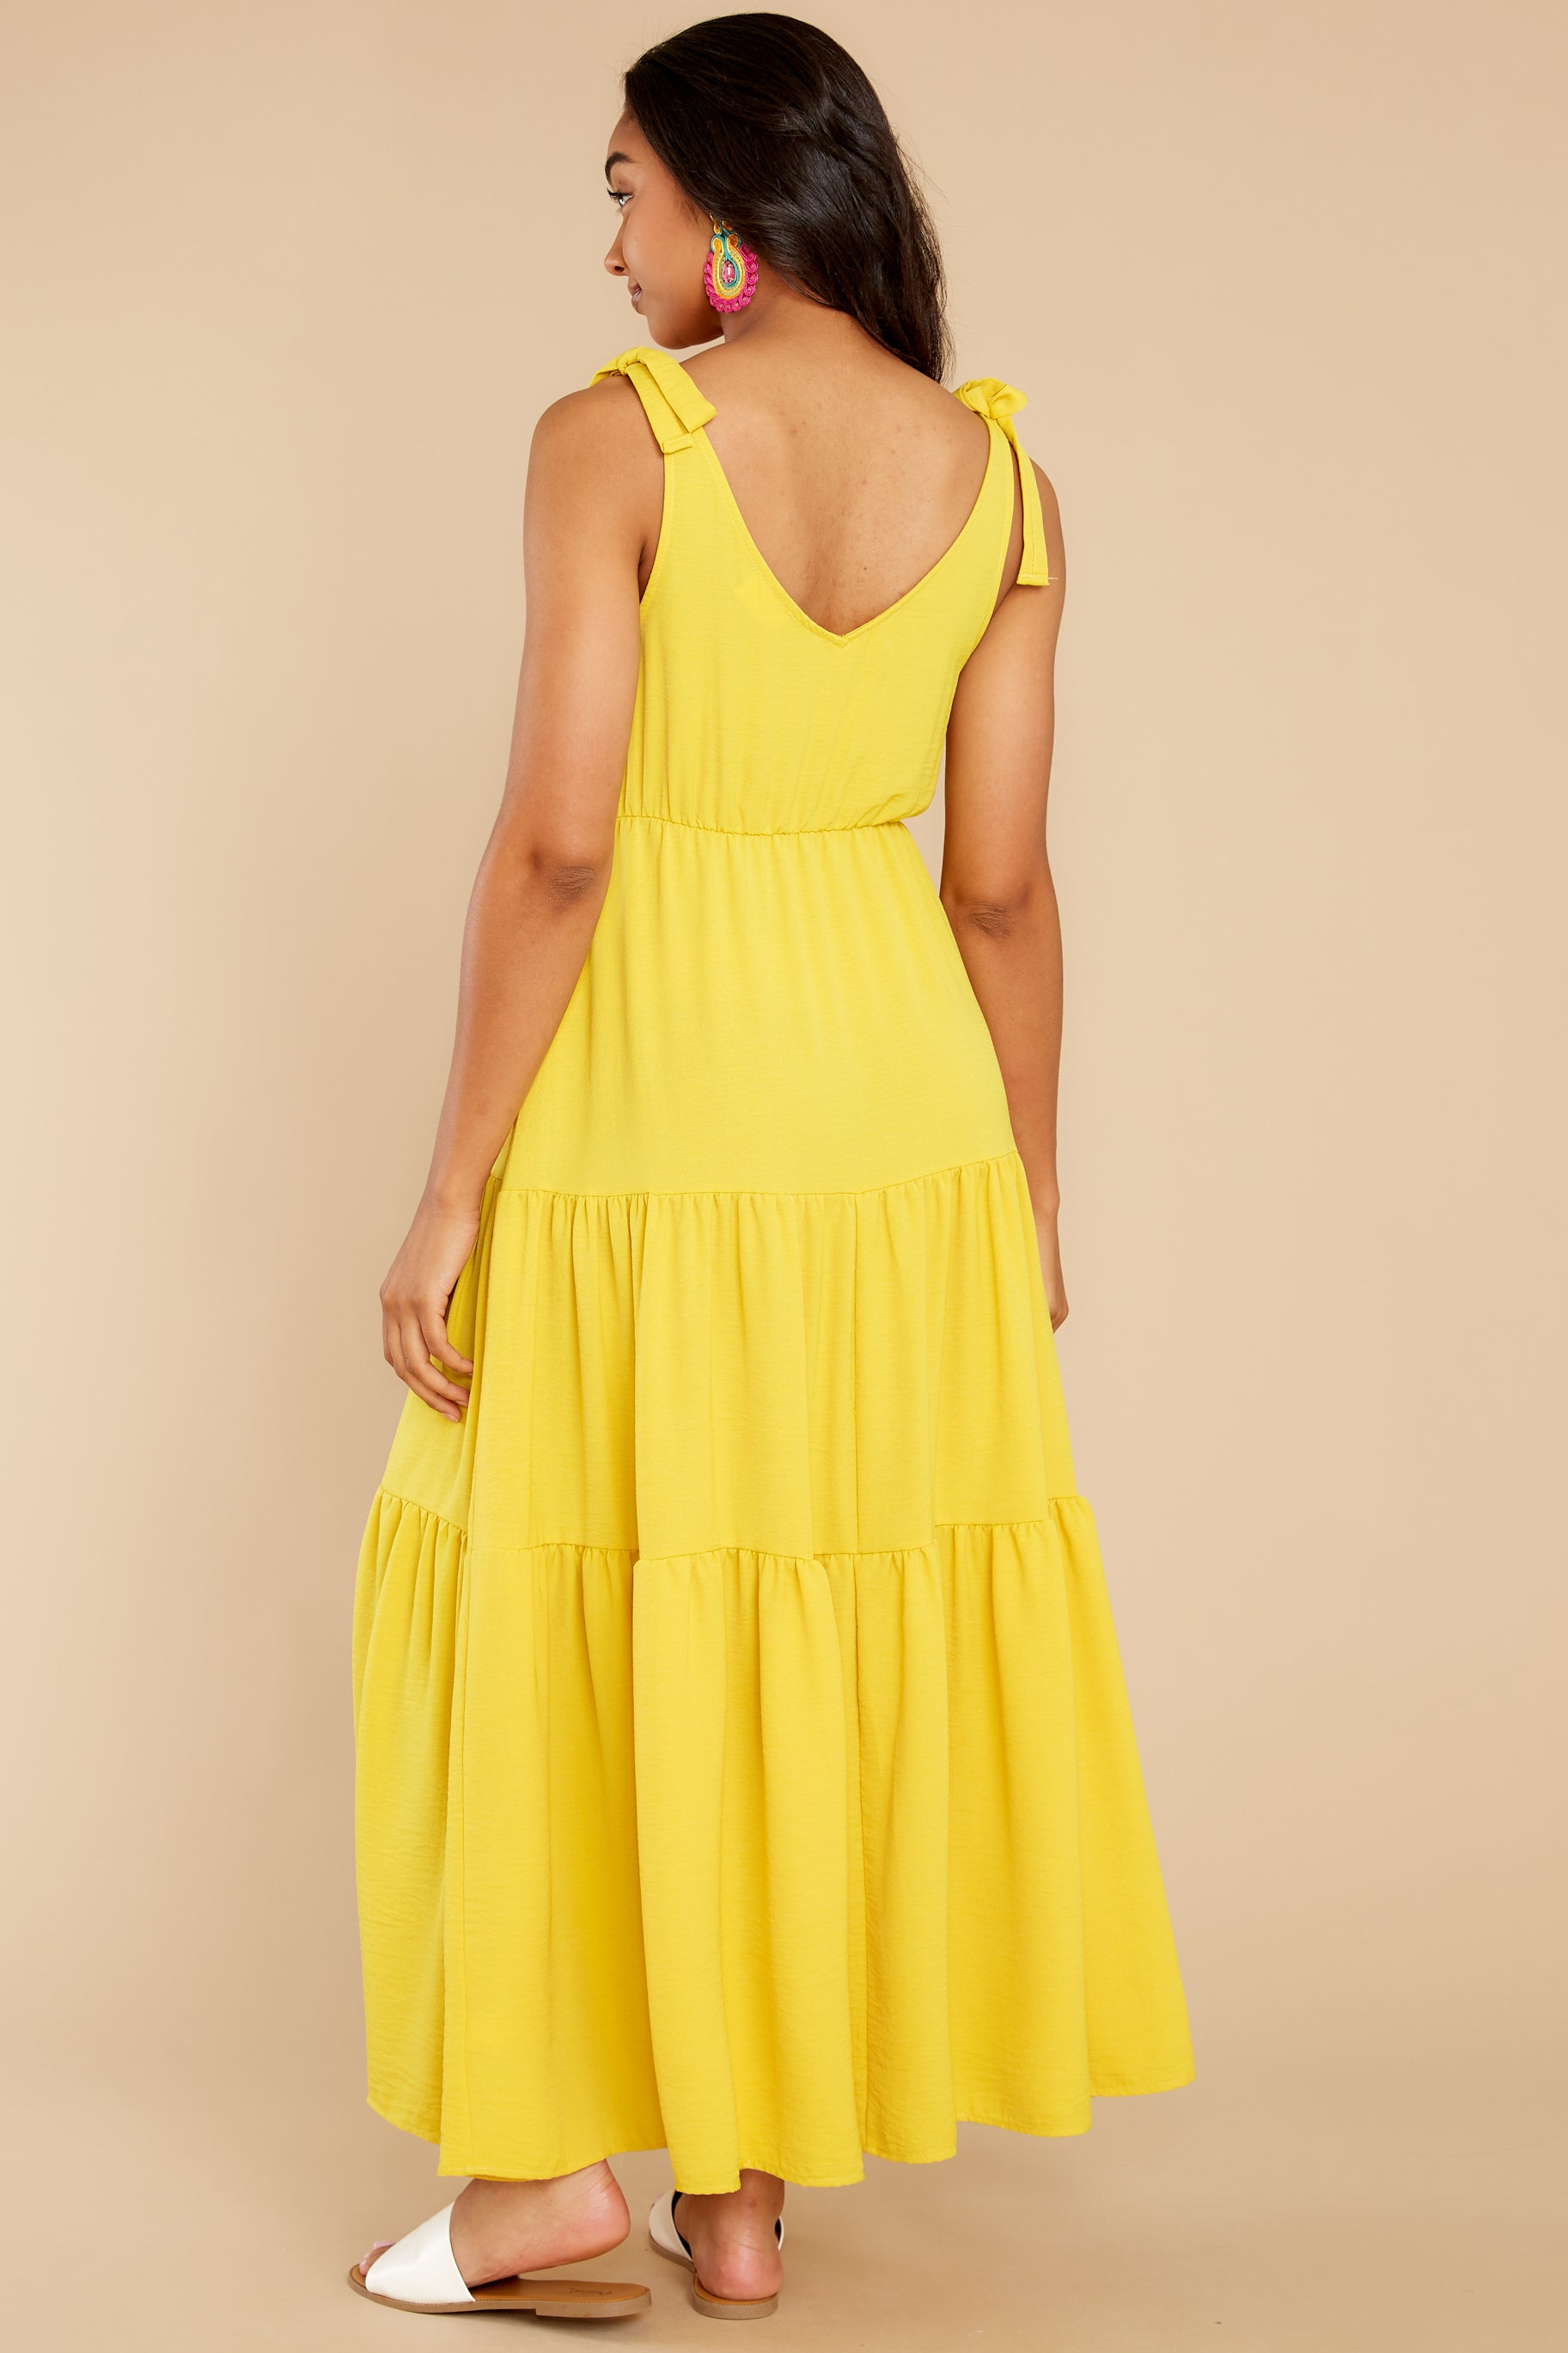 7 Right Kind Of Attention Yellow Maxi Dress at reddress.com